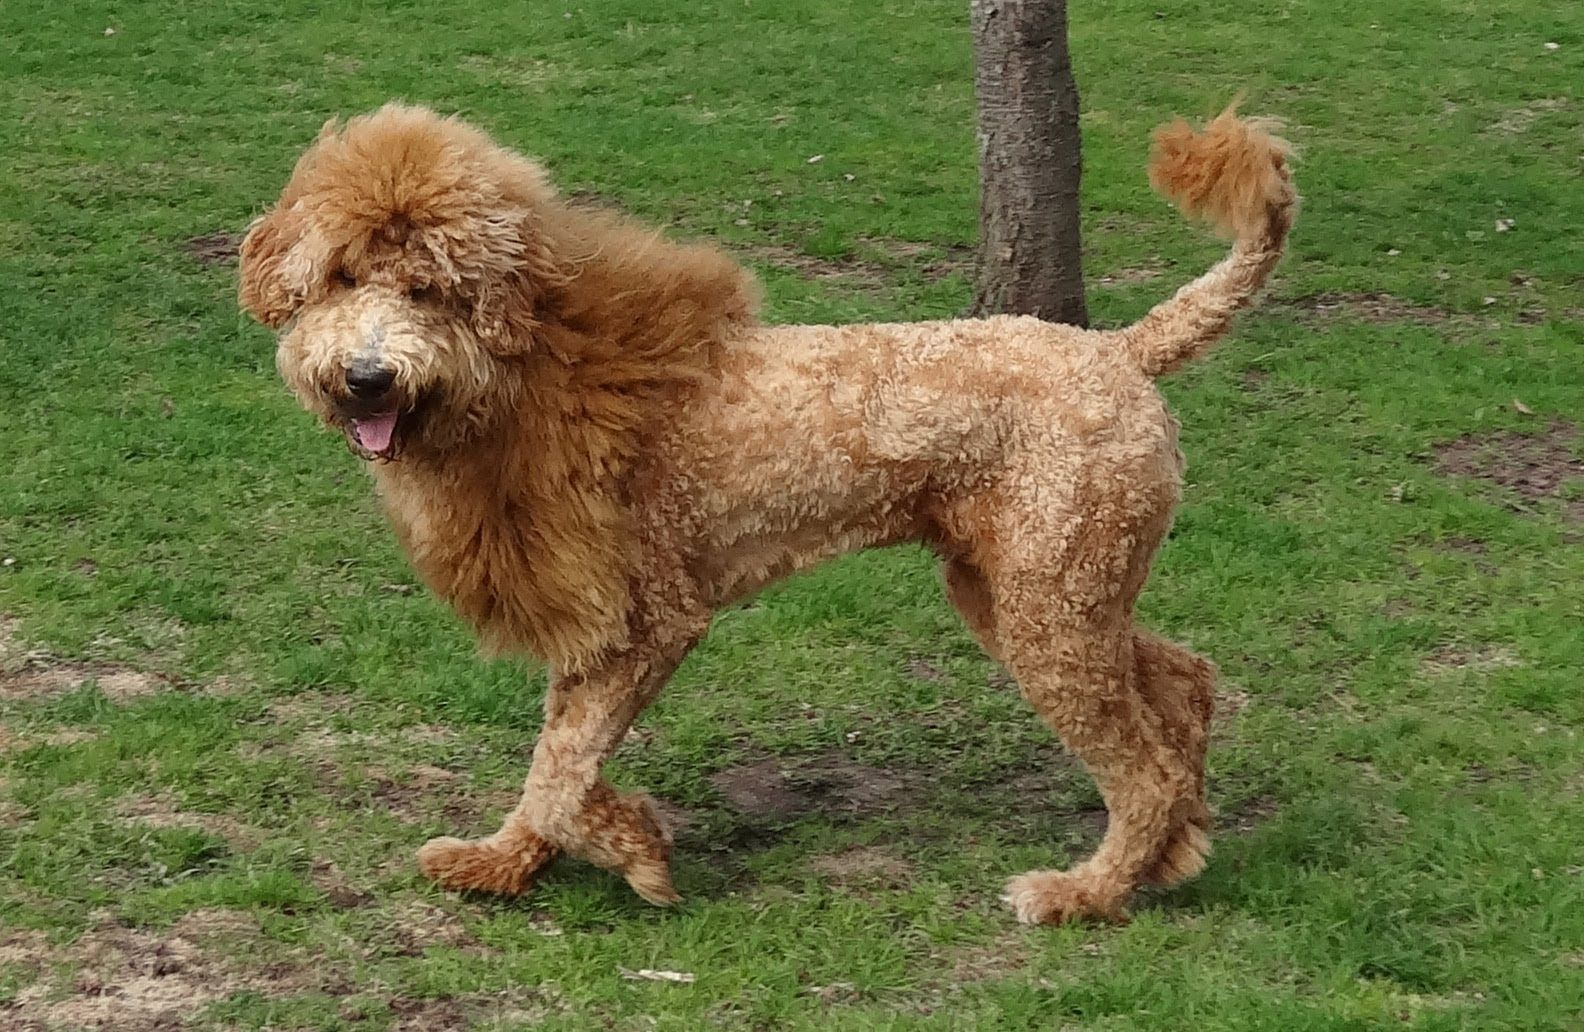 Types Of Goldendoodle Haircuts Goldendoodle Haircuts That Will Make You Swoon Goldendoodle Haircuts Goldendoodle Goldendoodle Grooming